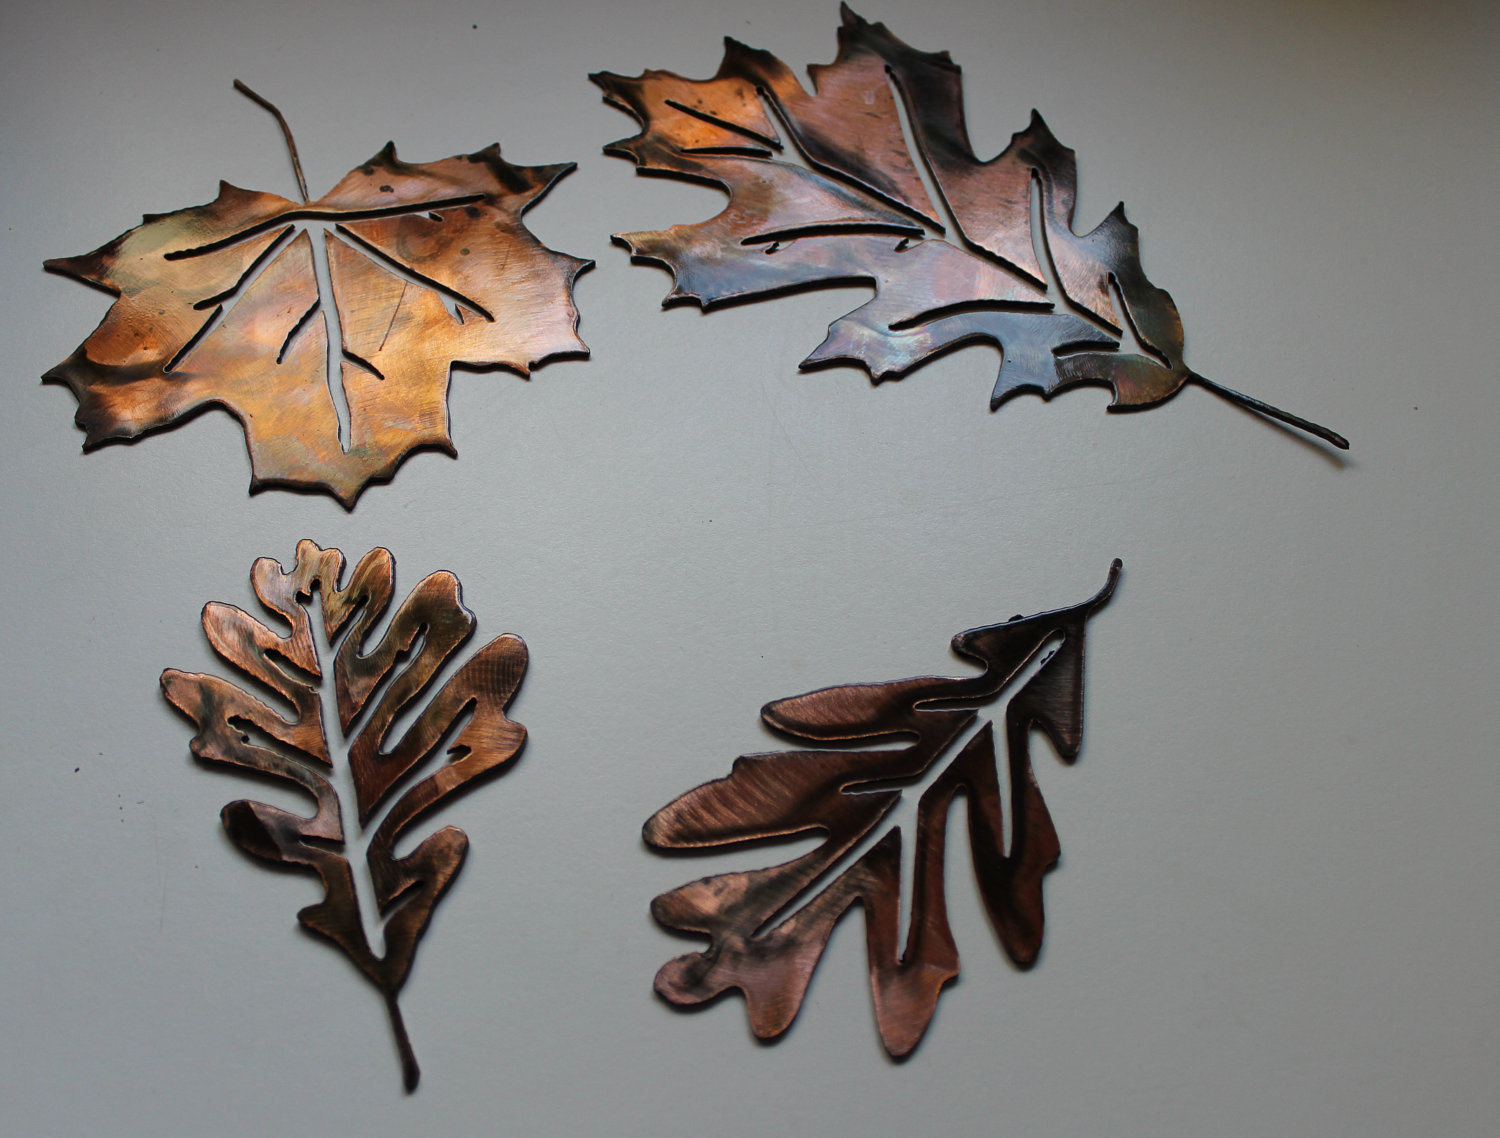 Metal Leaf Wall Decor By Red Barrel Studio Intended For Well Known Stlye Metal Leaves Wall Decor Design Idea And Decors How Custom (View 10 of 20)